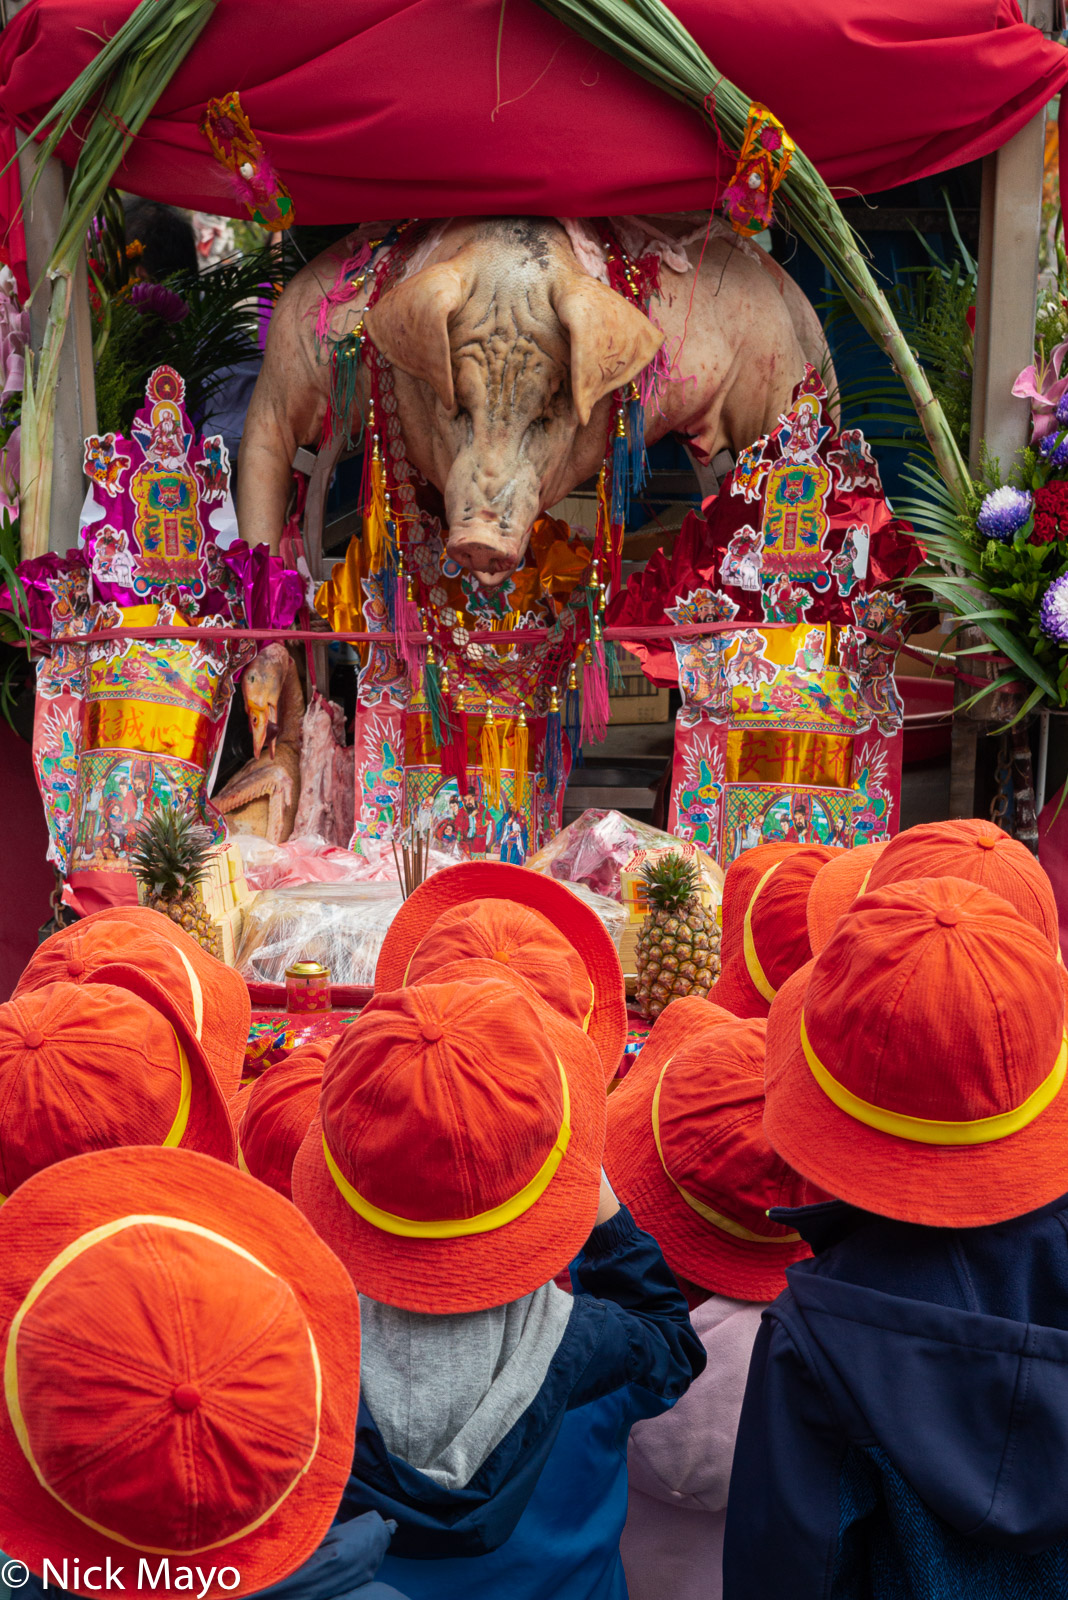 School children admiring a shen zhu (holy pig) displayed at a temple festival in Linkou.